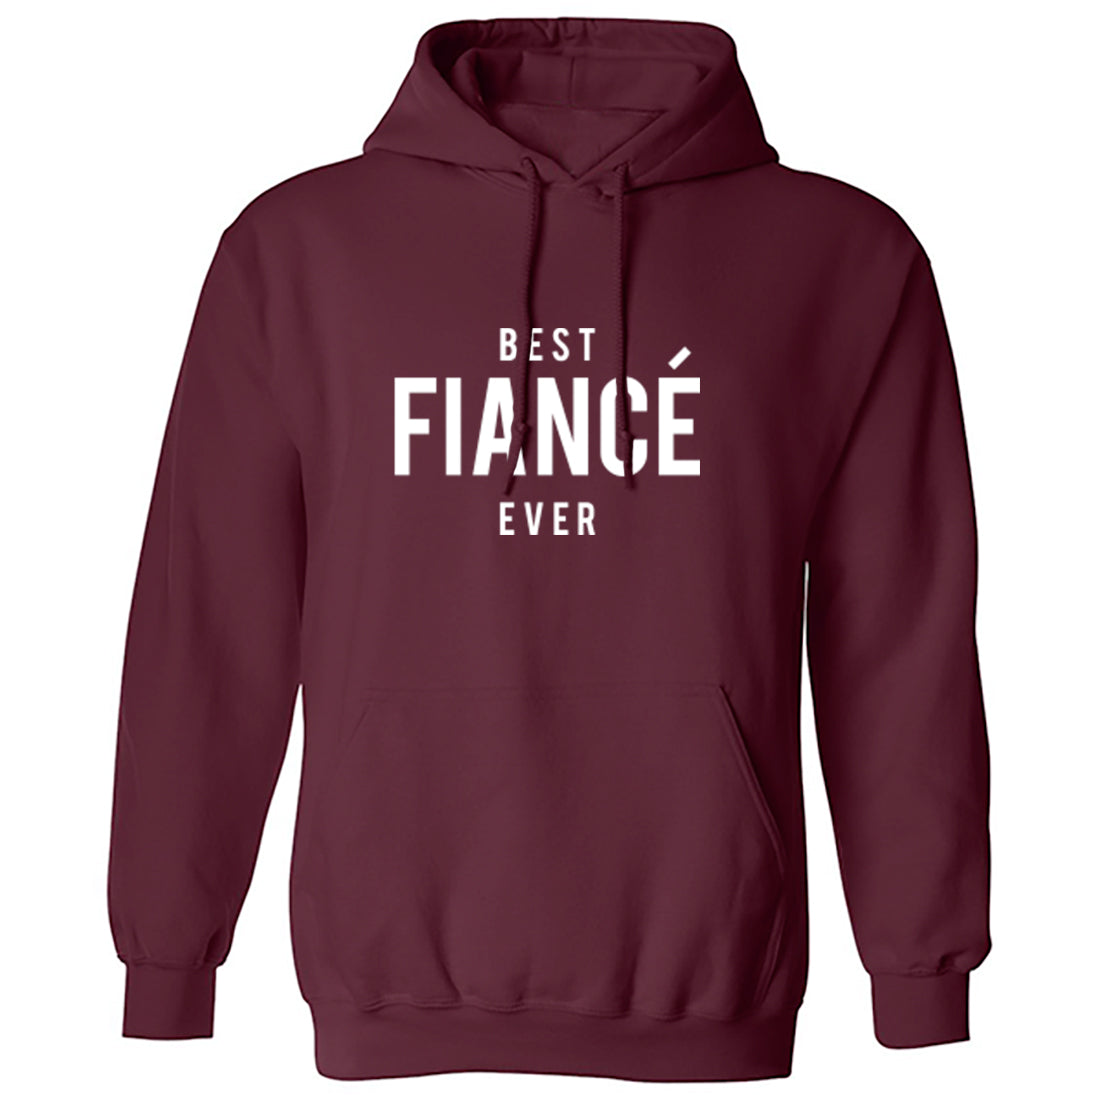 Best Fiance Ever Unisex Hoodie K1475 - Illustrated Identity Ltd.